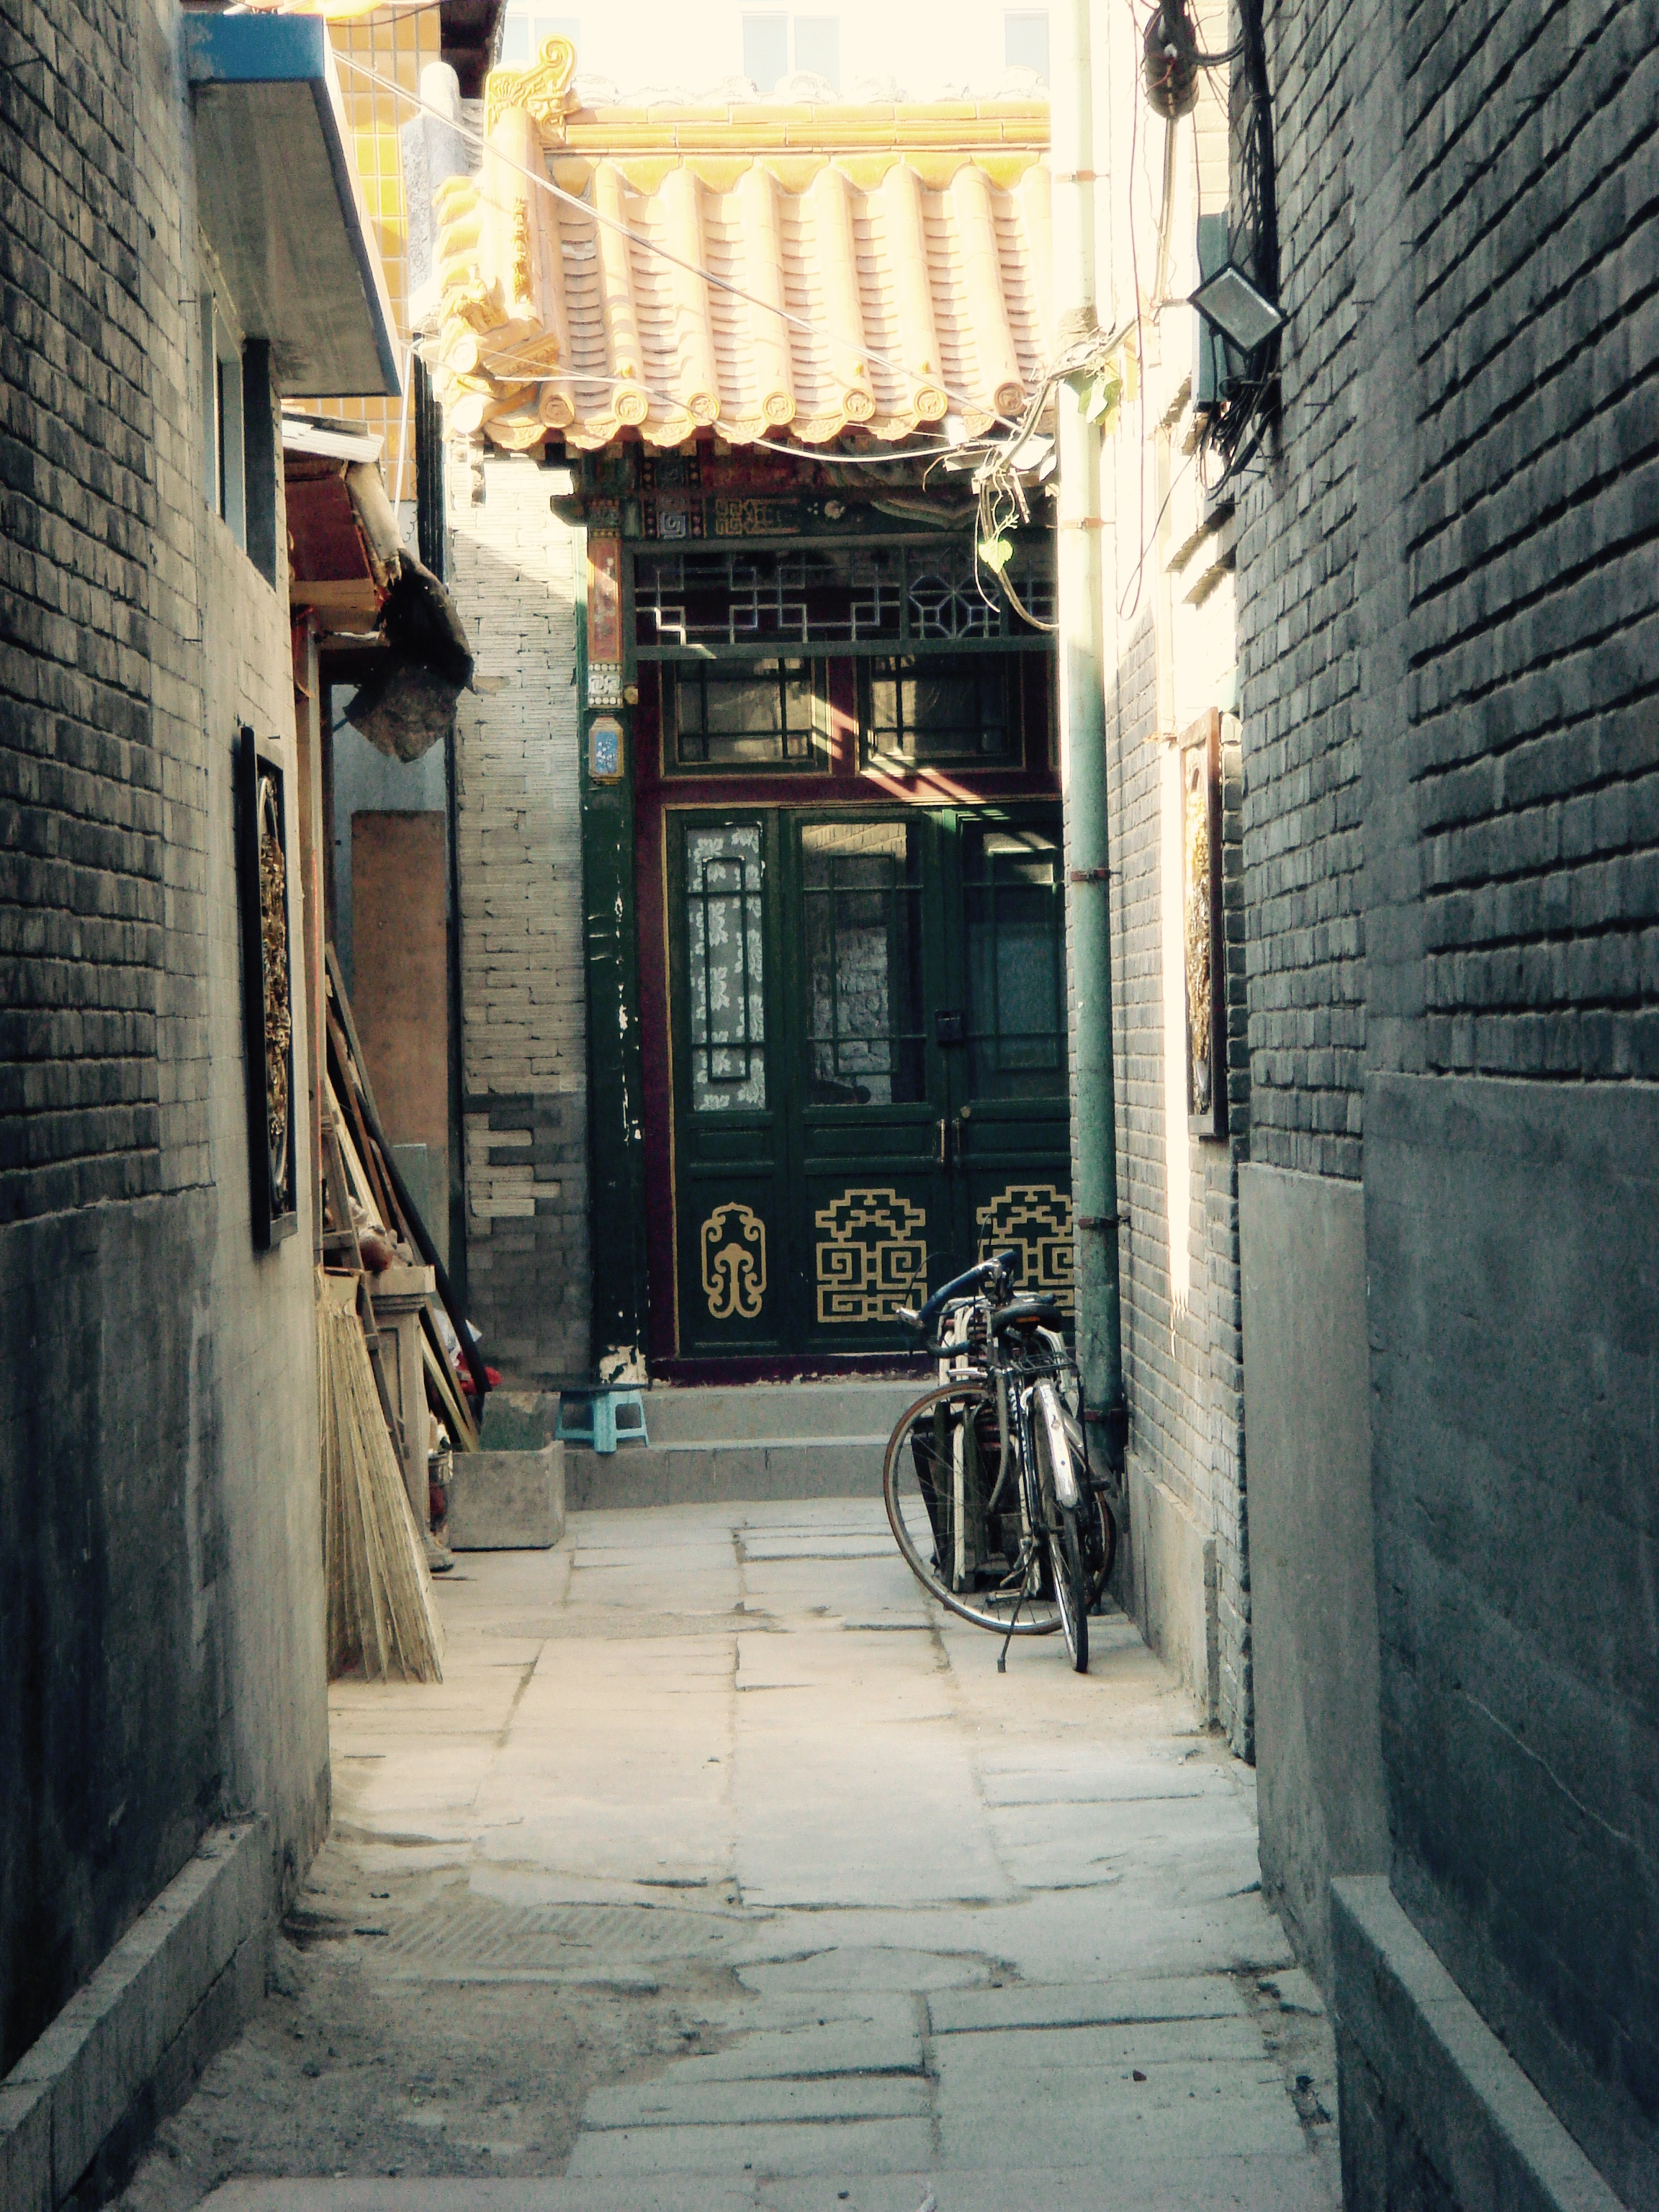 An alleyway in Beijing, China